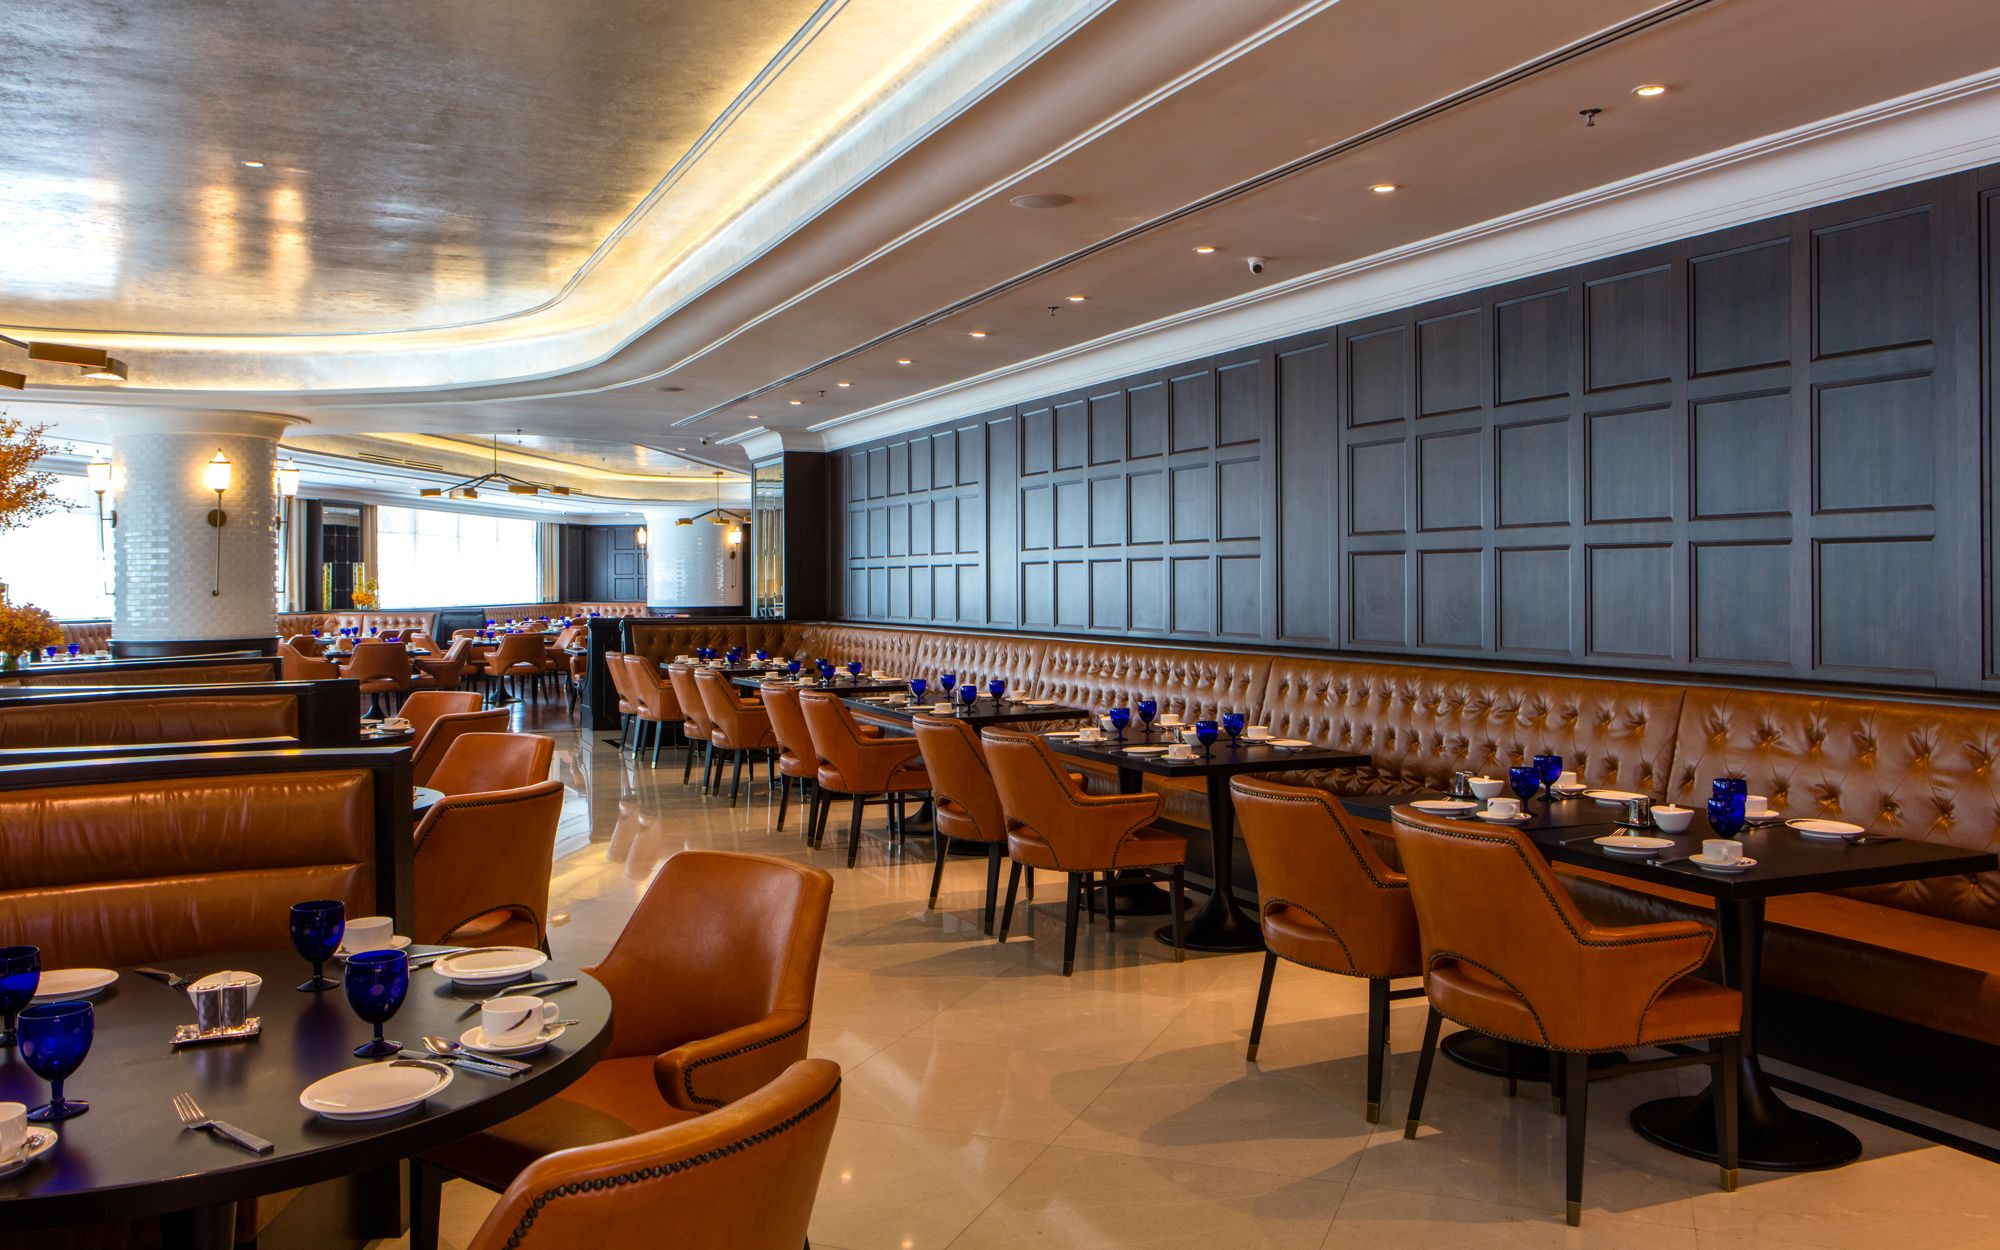 Vast dining room with a dark wood wall lined by banquette seating, plus additional booth seating and natural light